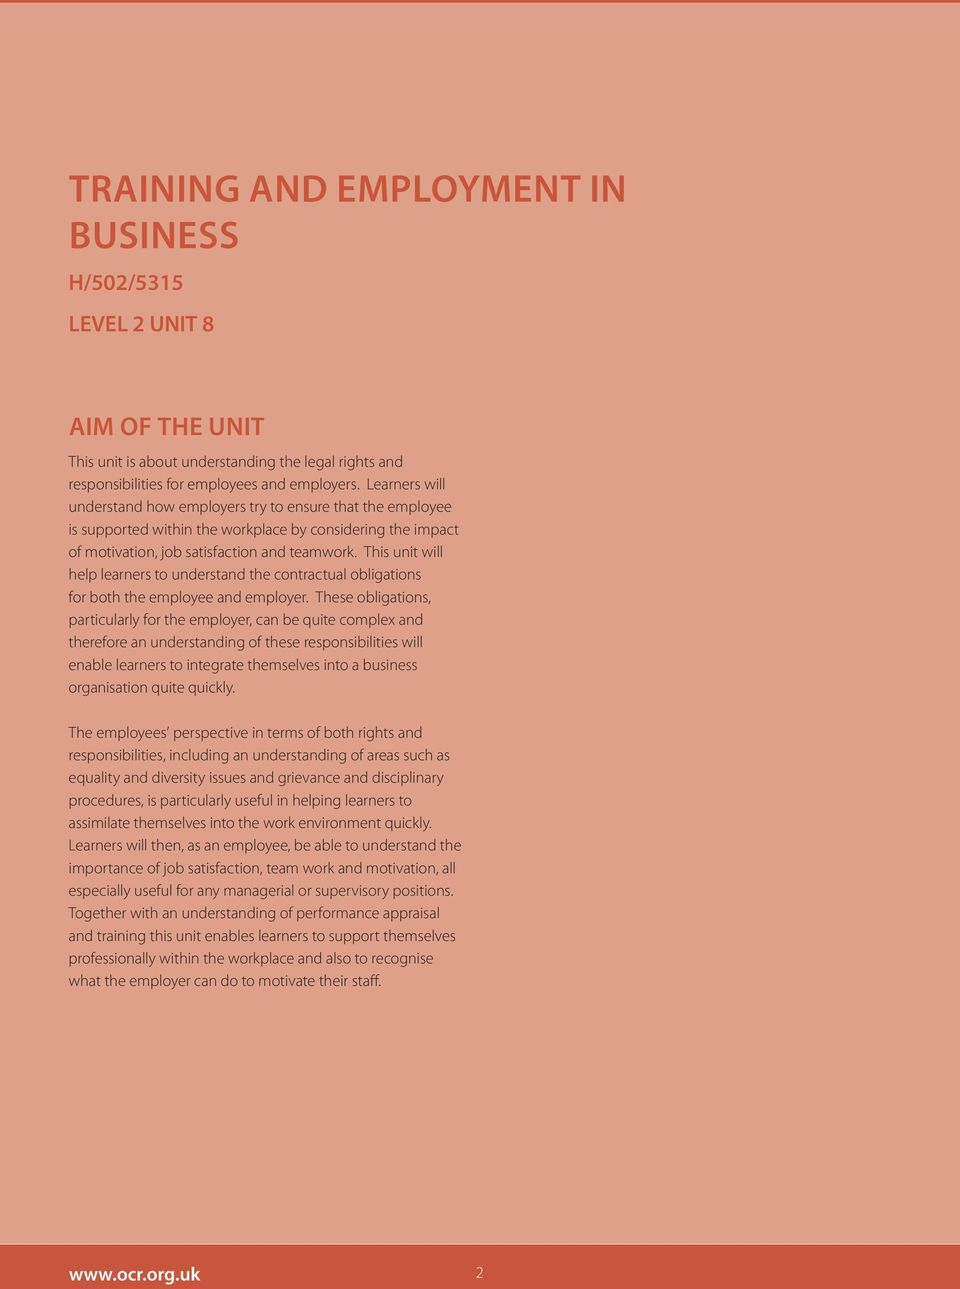 This unit will help learners to understand the contractual obligations for both the employee and employer.